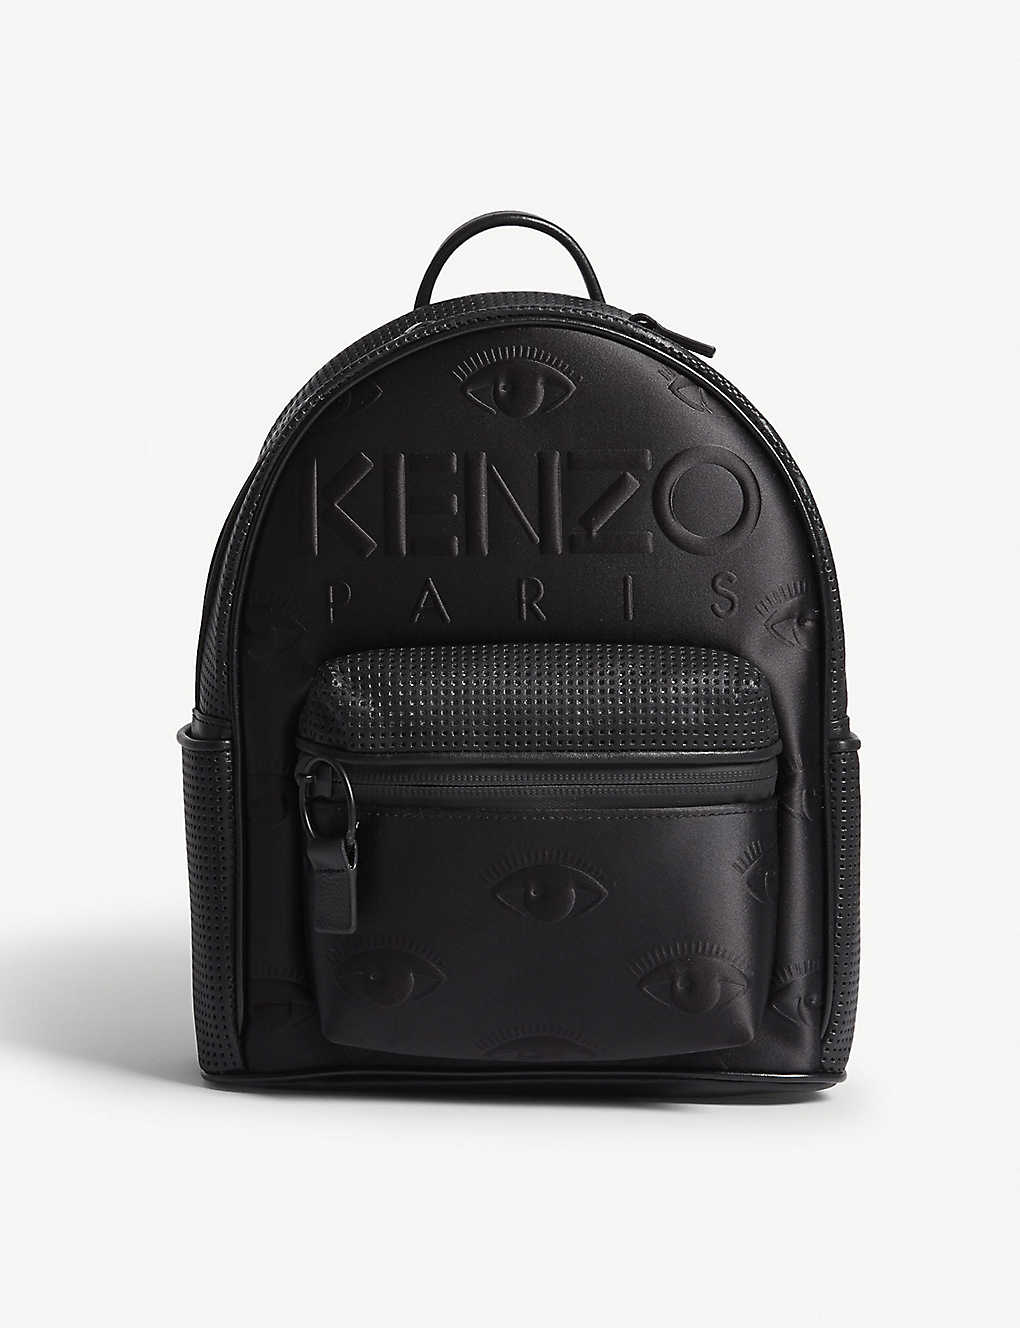 596262df011 KENZO - Kombo neoprene satin backpack | Selfridges.com